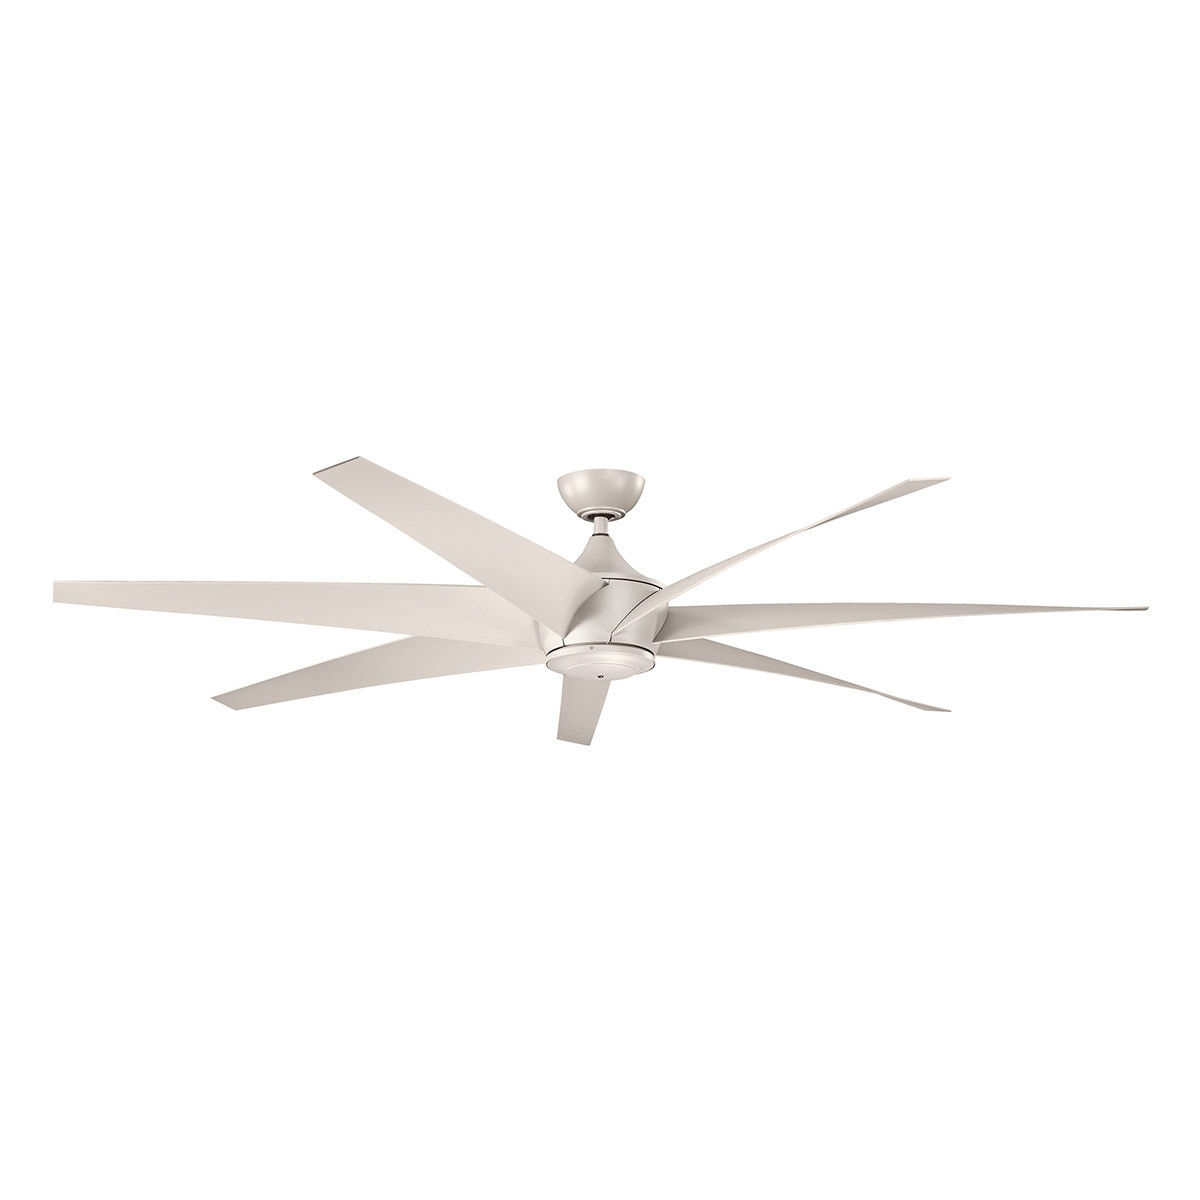 Newest Kichler 310115ans Lehr 80 Inch Antique Satin Silver Outdoor Ceiling With Regard To Outdoor Ceiling Fans At Kichler (View 13 of 20)